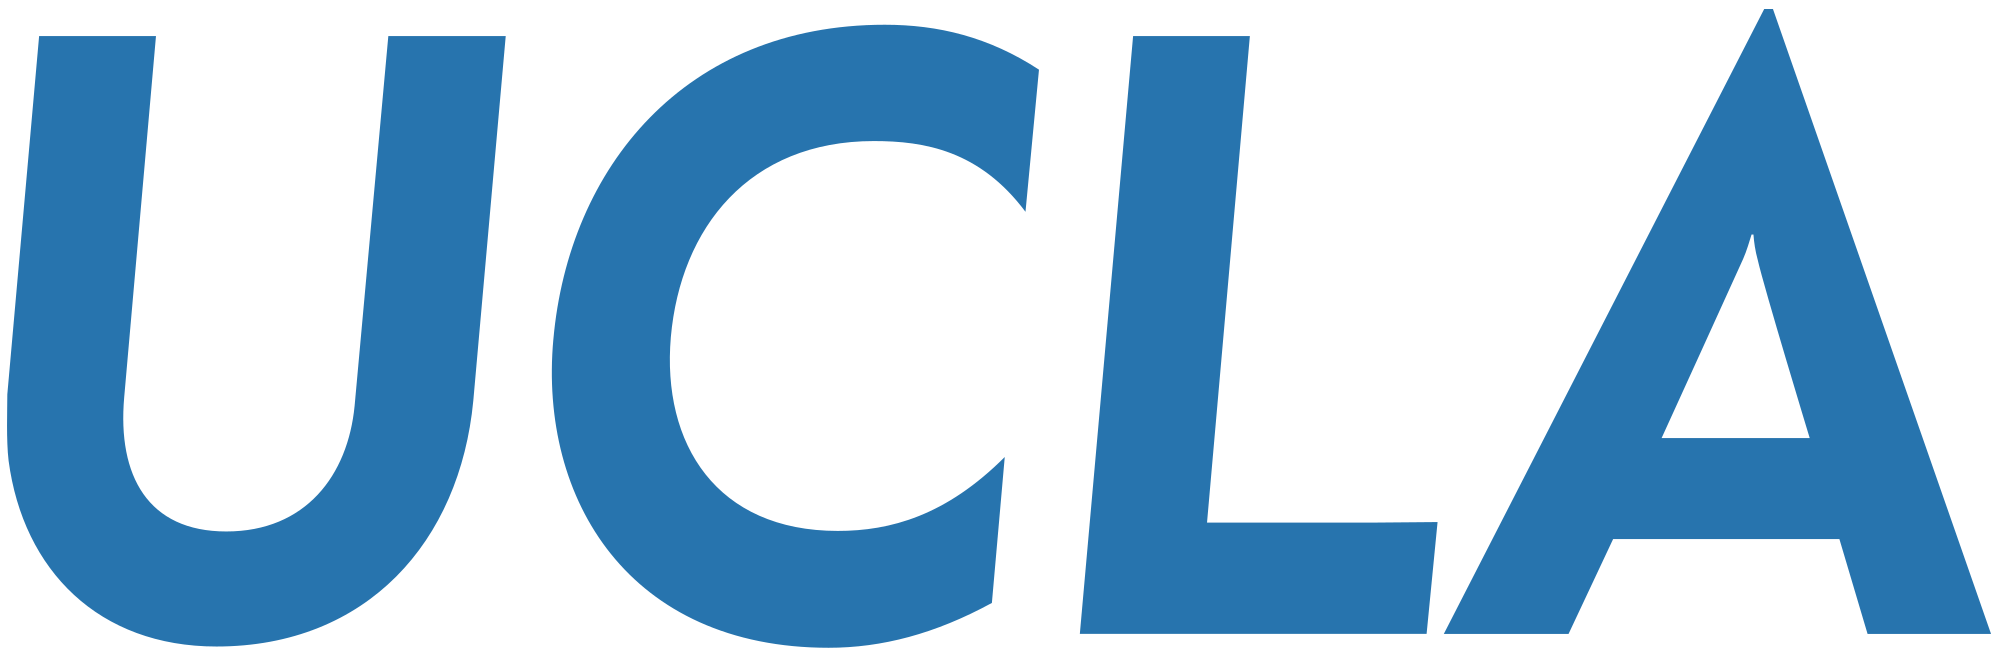 Ucla logo png. File university of california